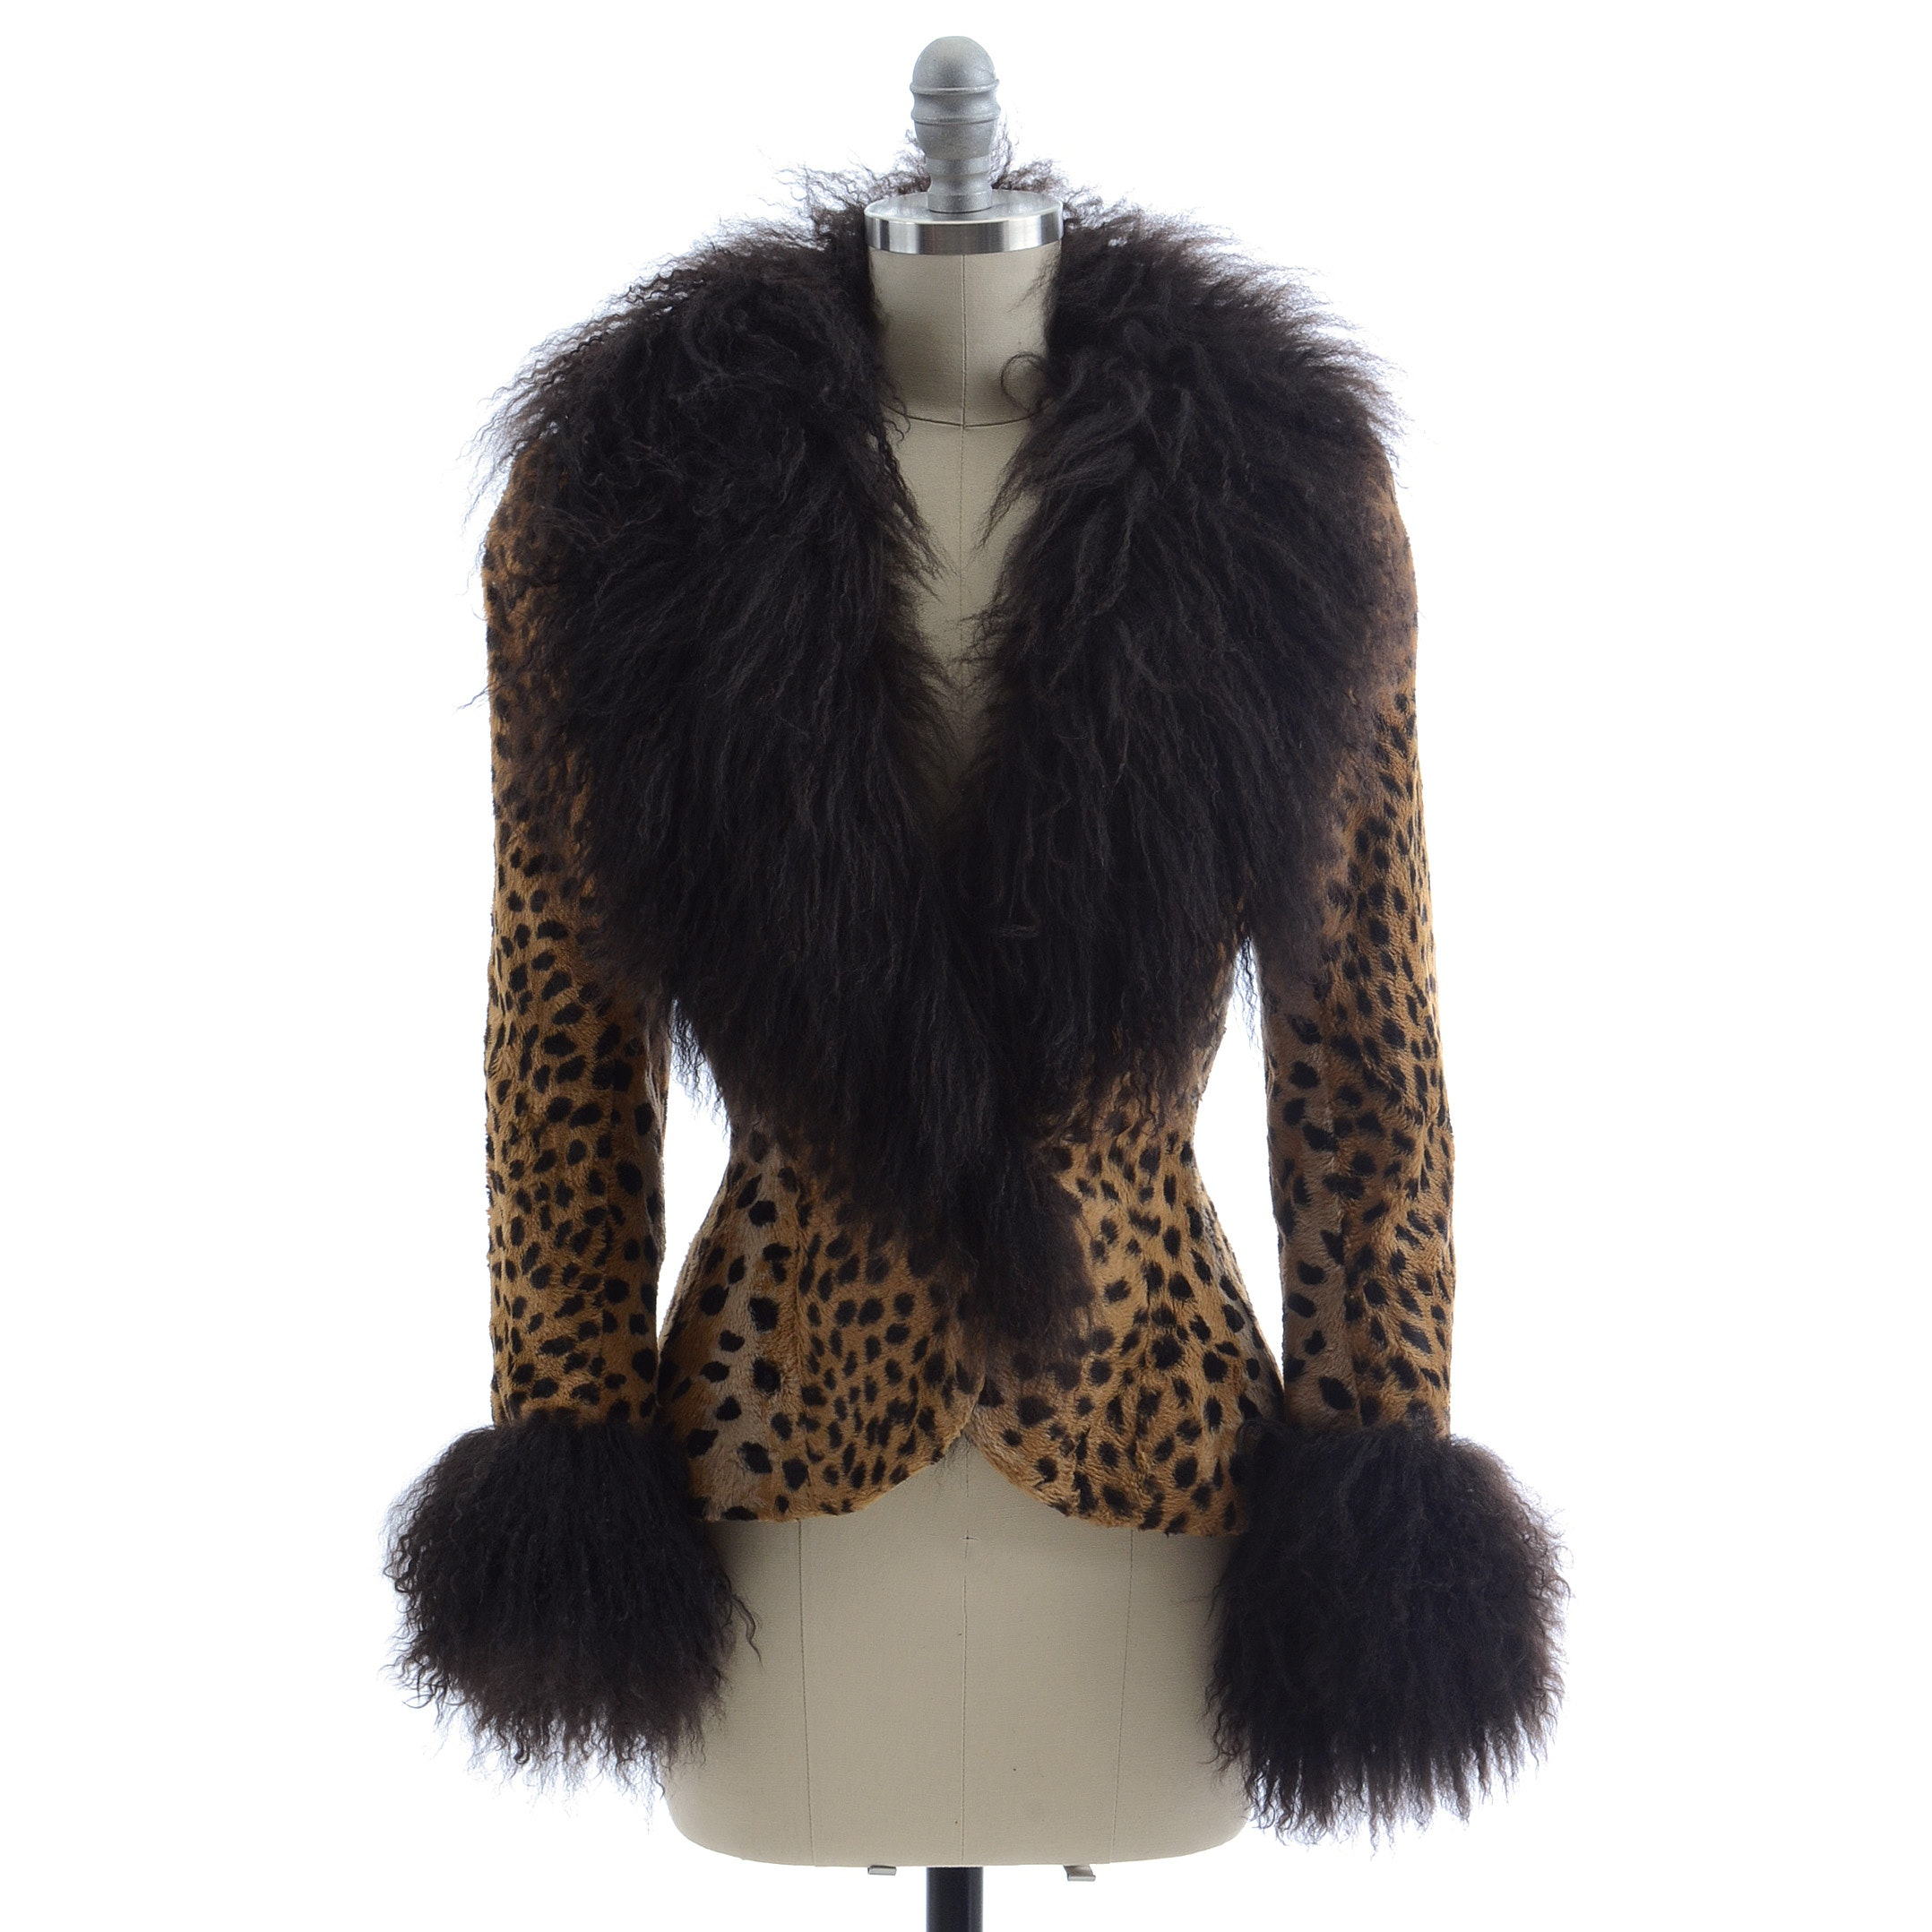 Emanuel Ungaro of Paris Parallele Cheetah Print Jacket Trimmed in Mongolian Curly Lamb Fur